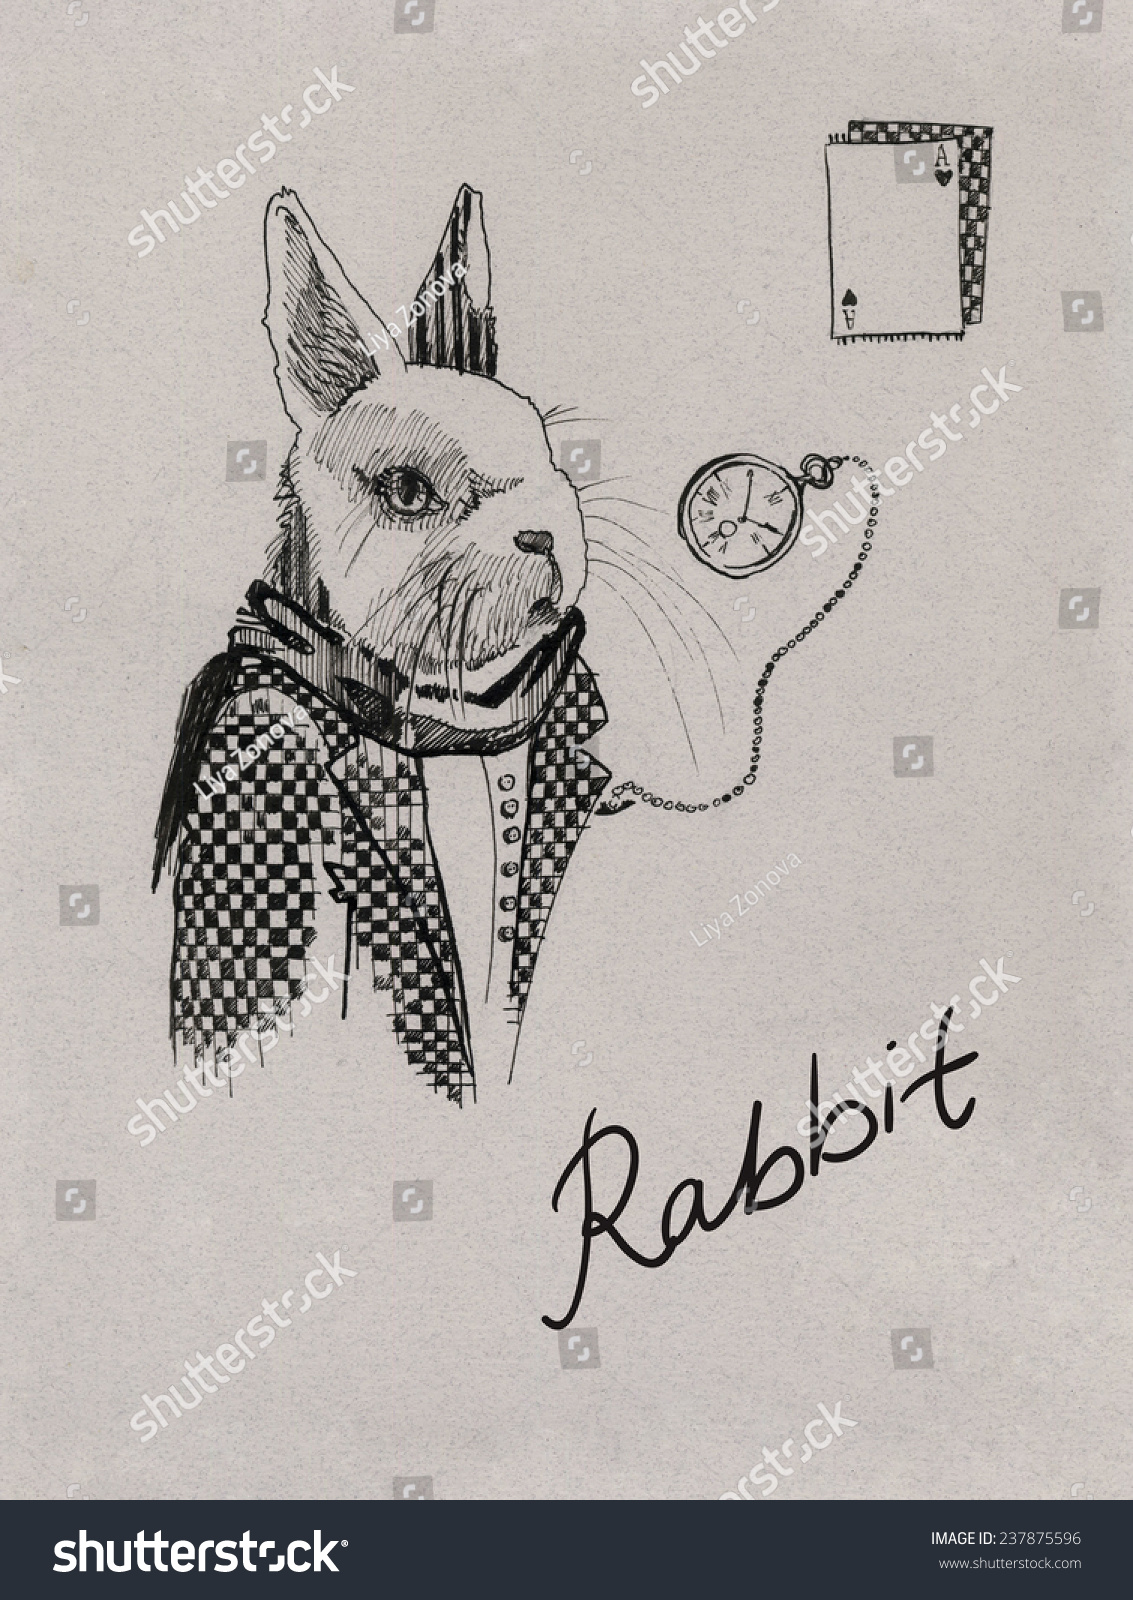 Rabbit From Alice In Wonderland Ink Drawing With Clock And Playing Cards  Black Drawing On